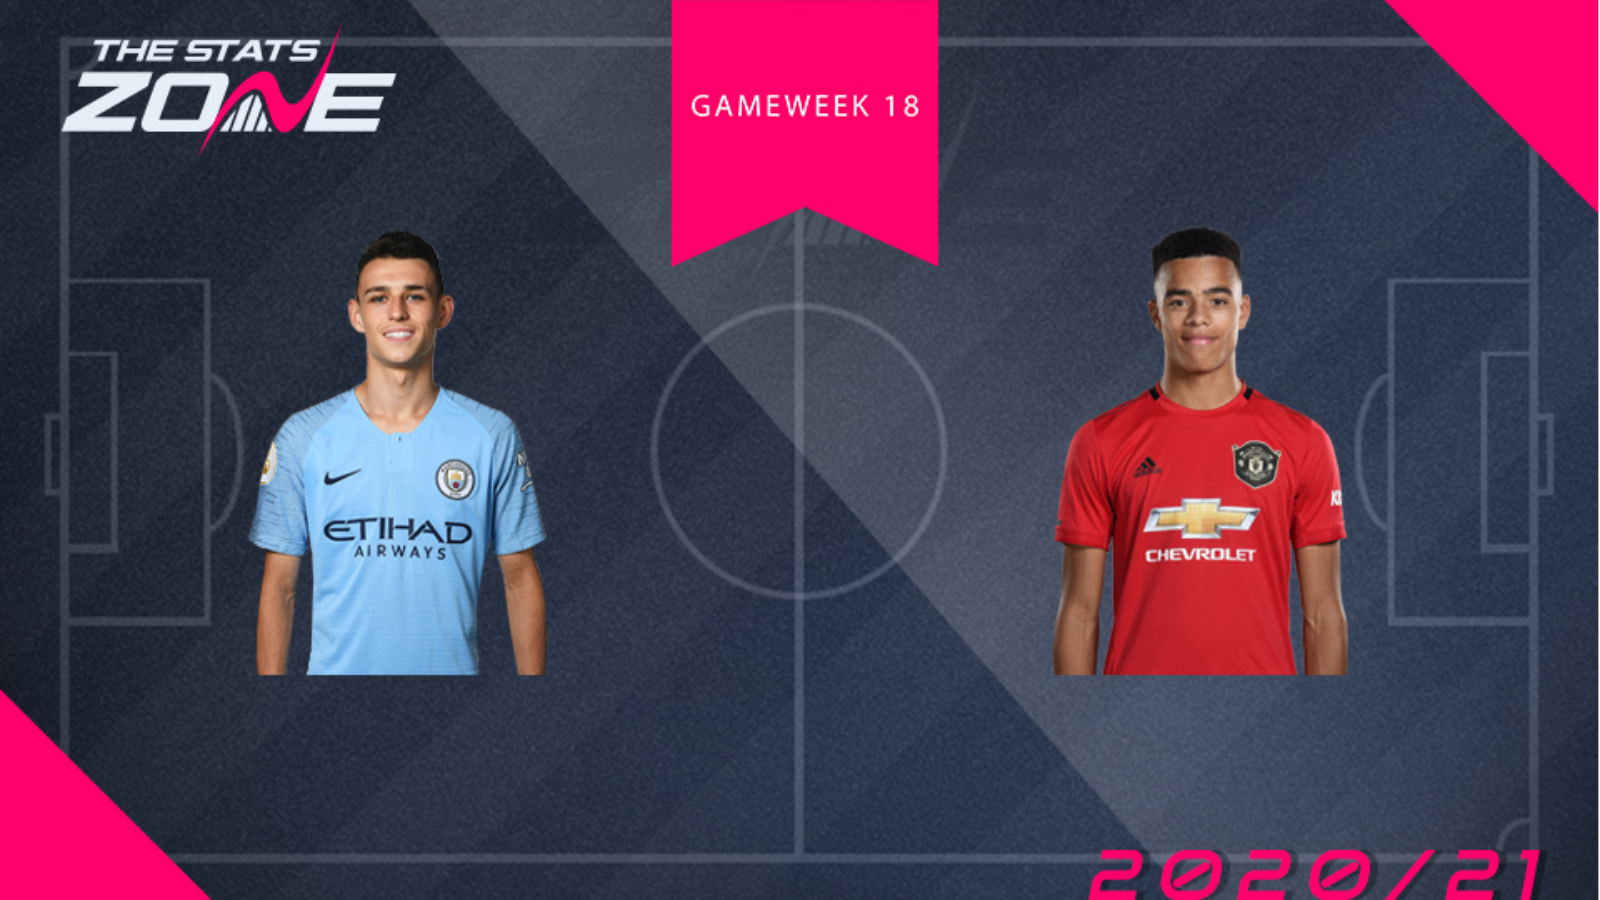 FPL Gameweek 18 – head-to-head comparisons: Phil Foden vs Mason Greenwood -  The Stats Zone